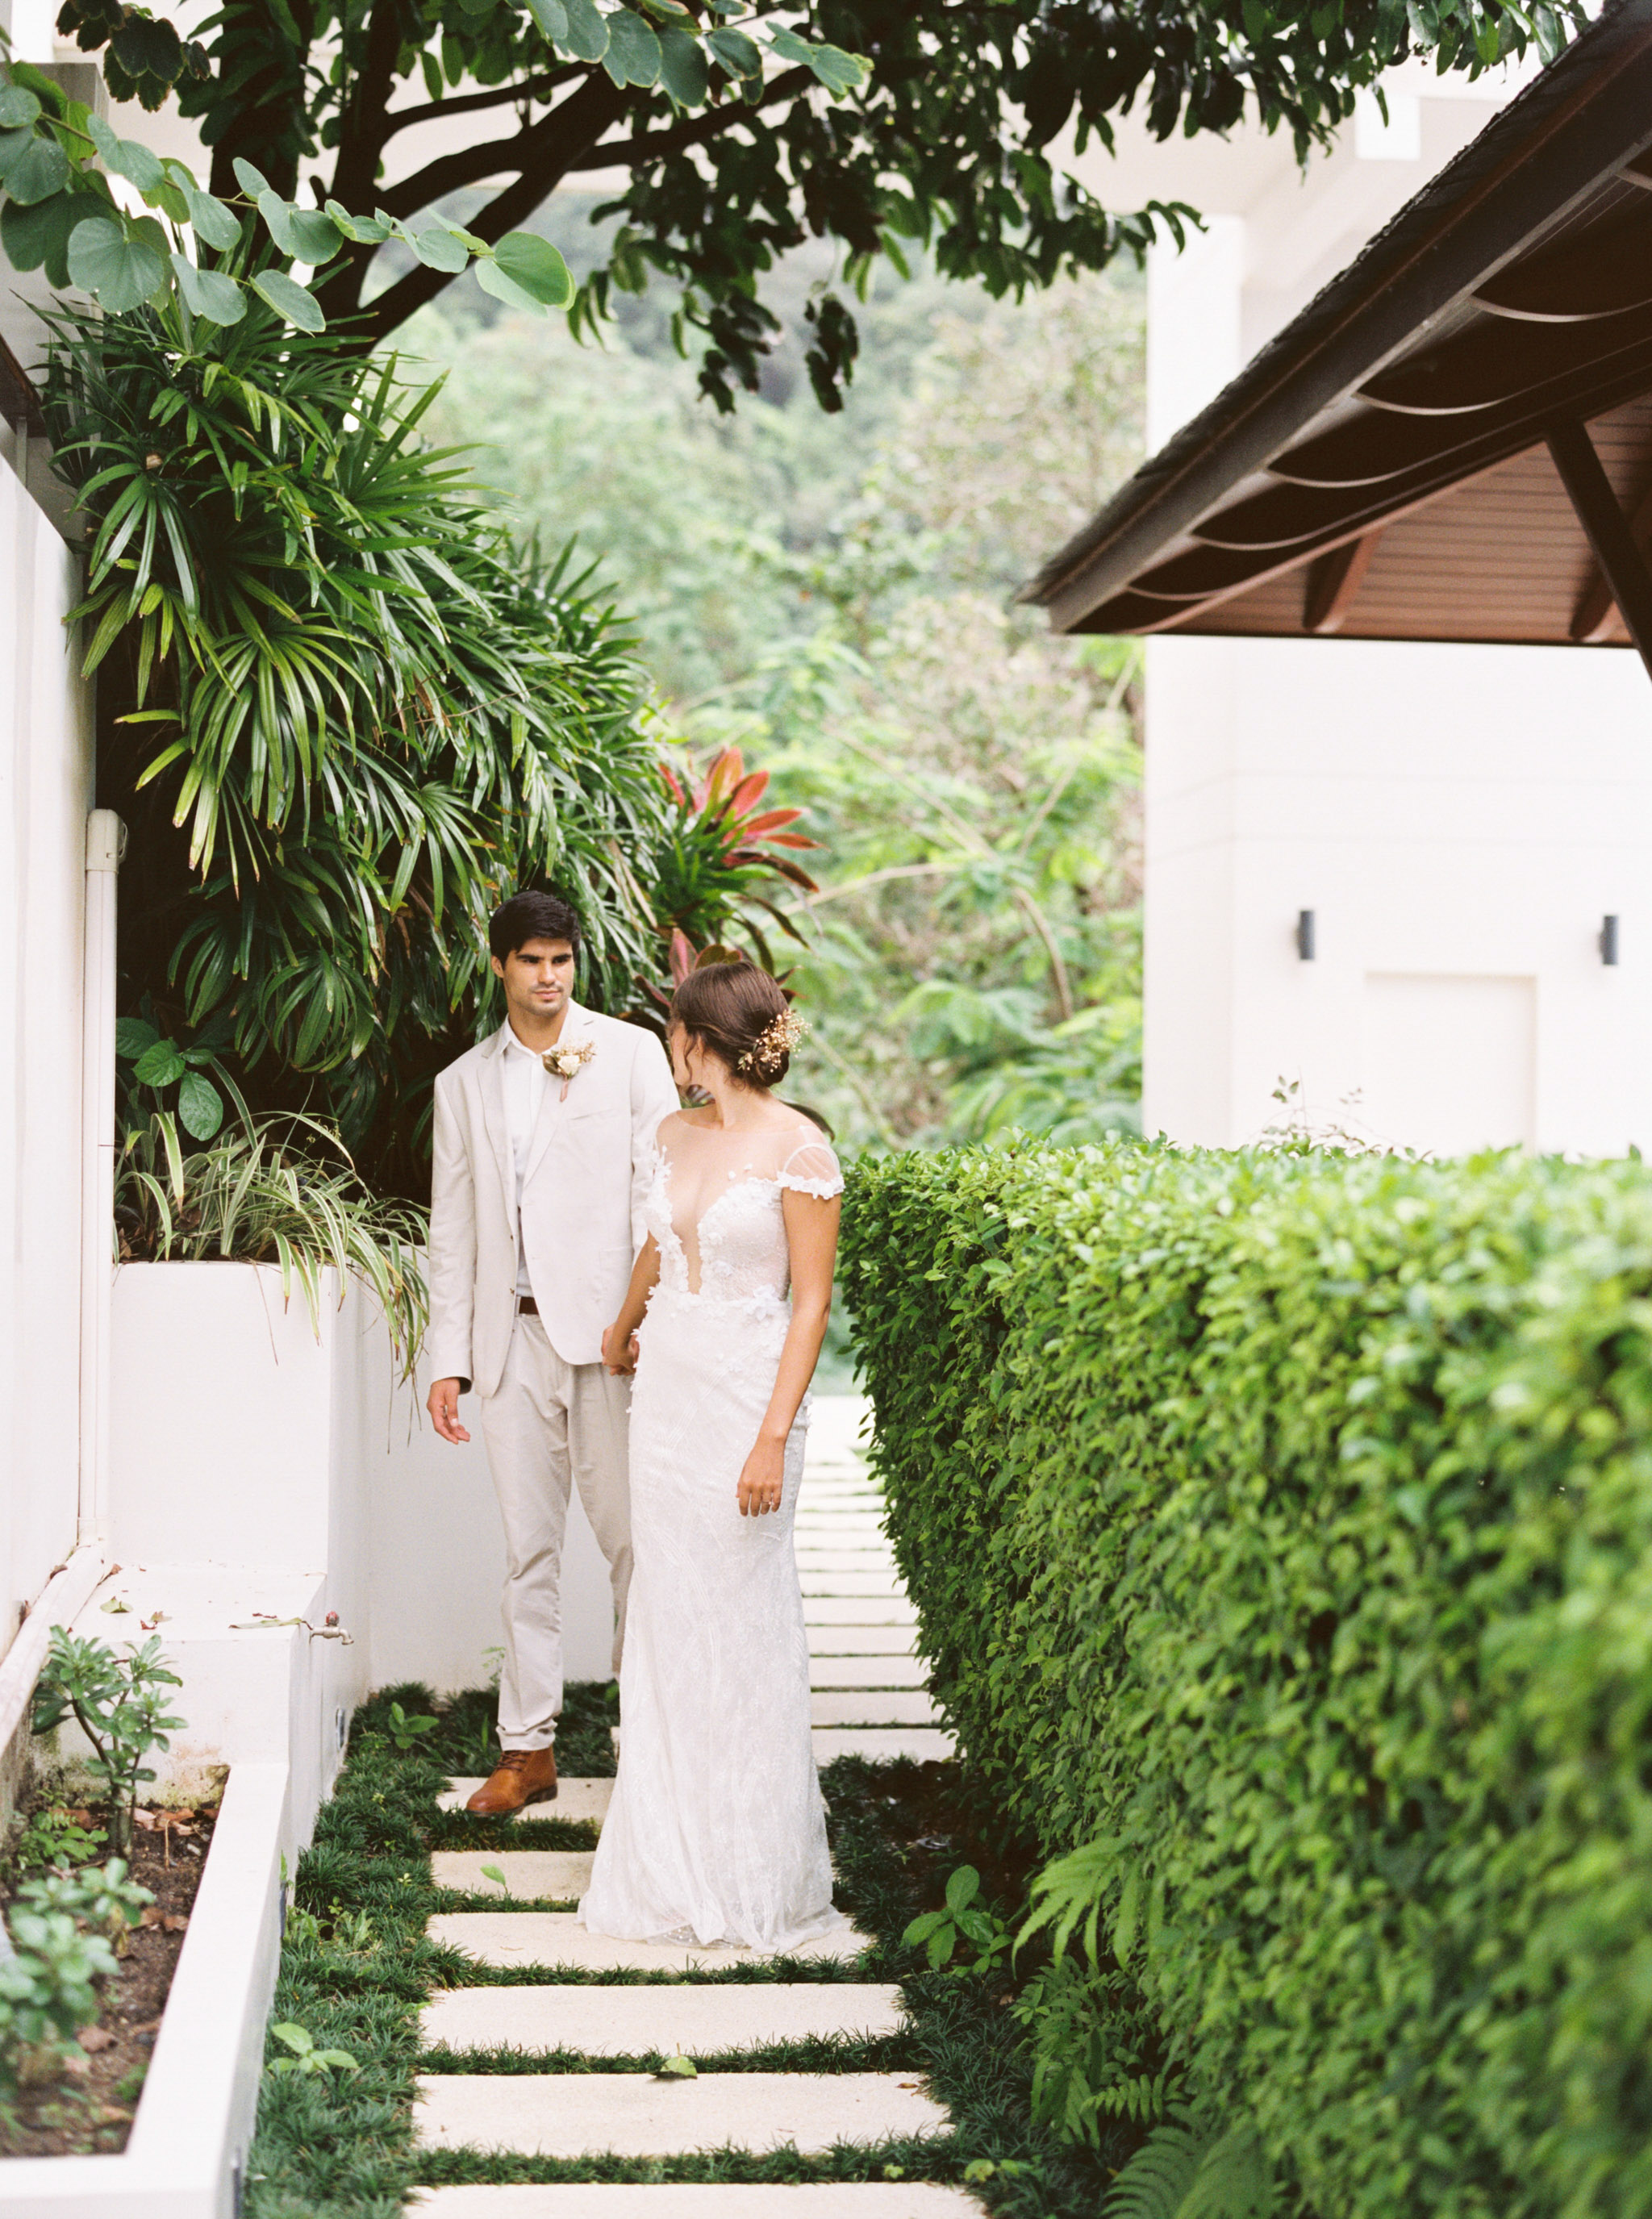 Destination Wedding at The Aquila Luxury Villas in Phuket Thailand Fine Art Film Wedding Photographer Sheri McMahon-00038-38.jpg